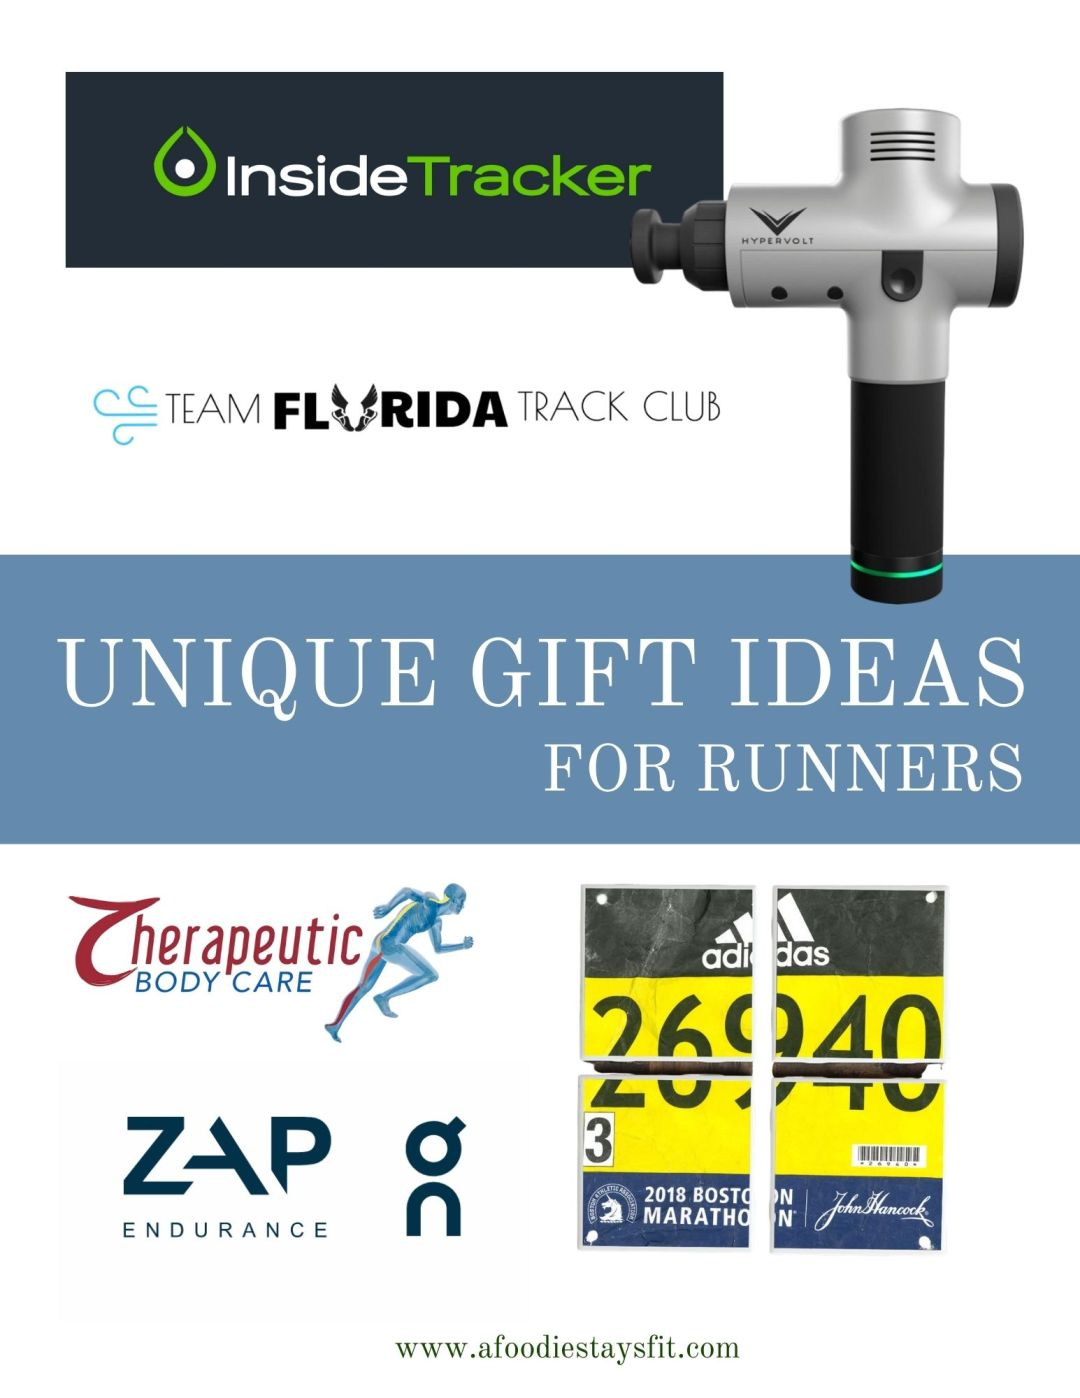 Unique Gifts for Runners You Haven't Heard